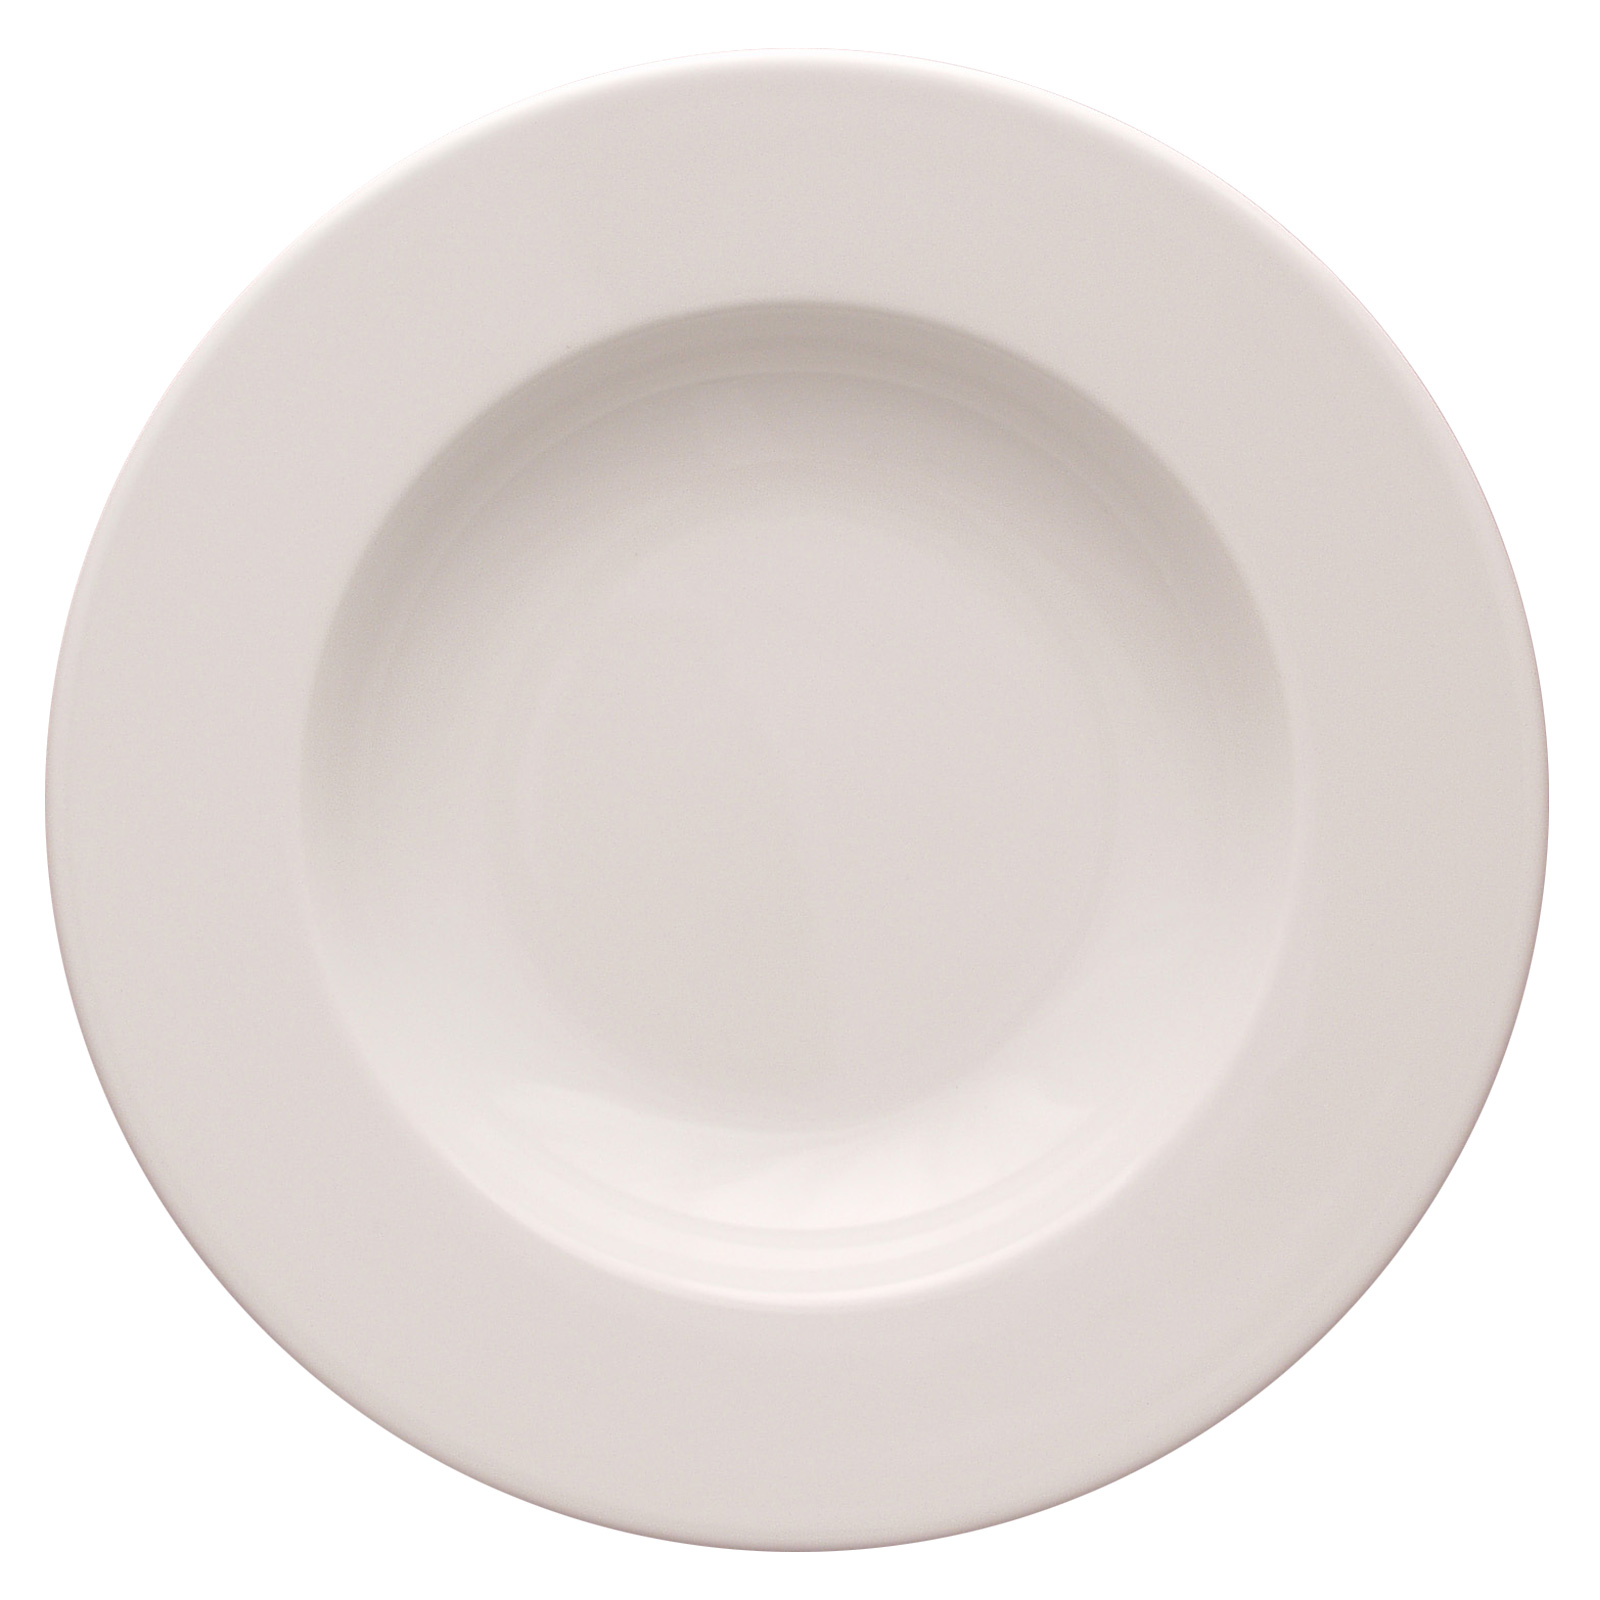 Set of 24 Roma Rimmed Soup Plates by Lubiana